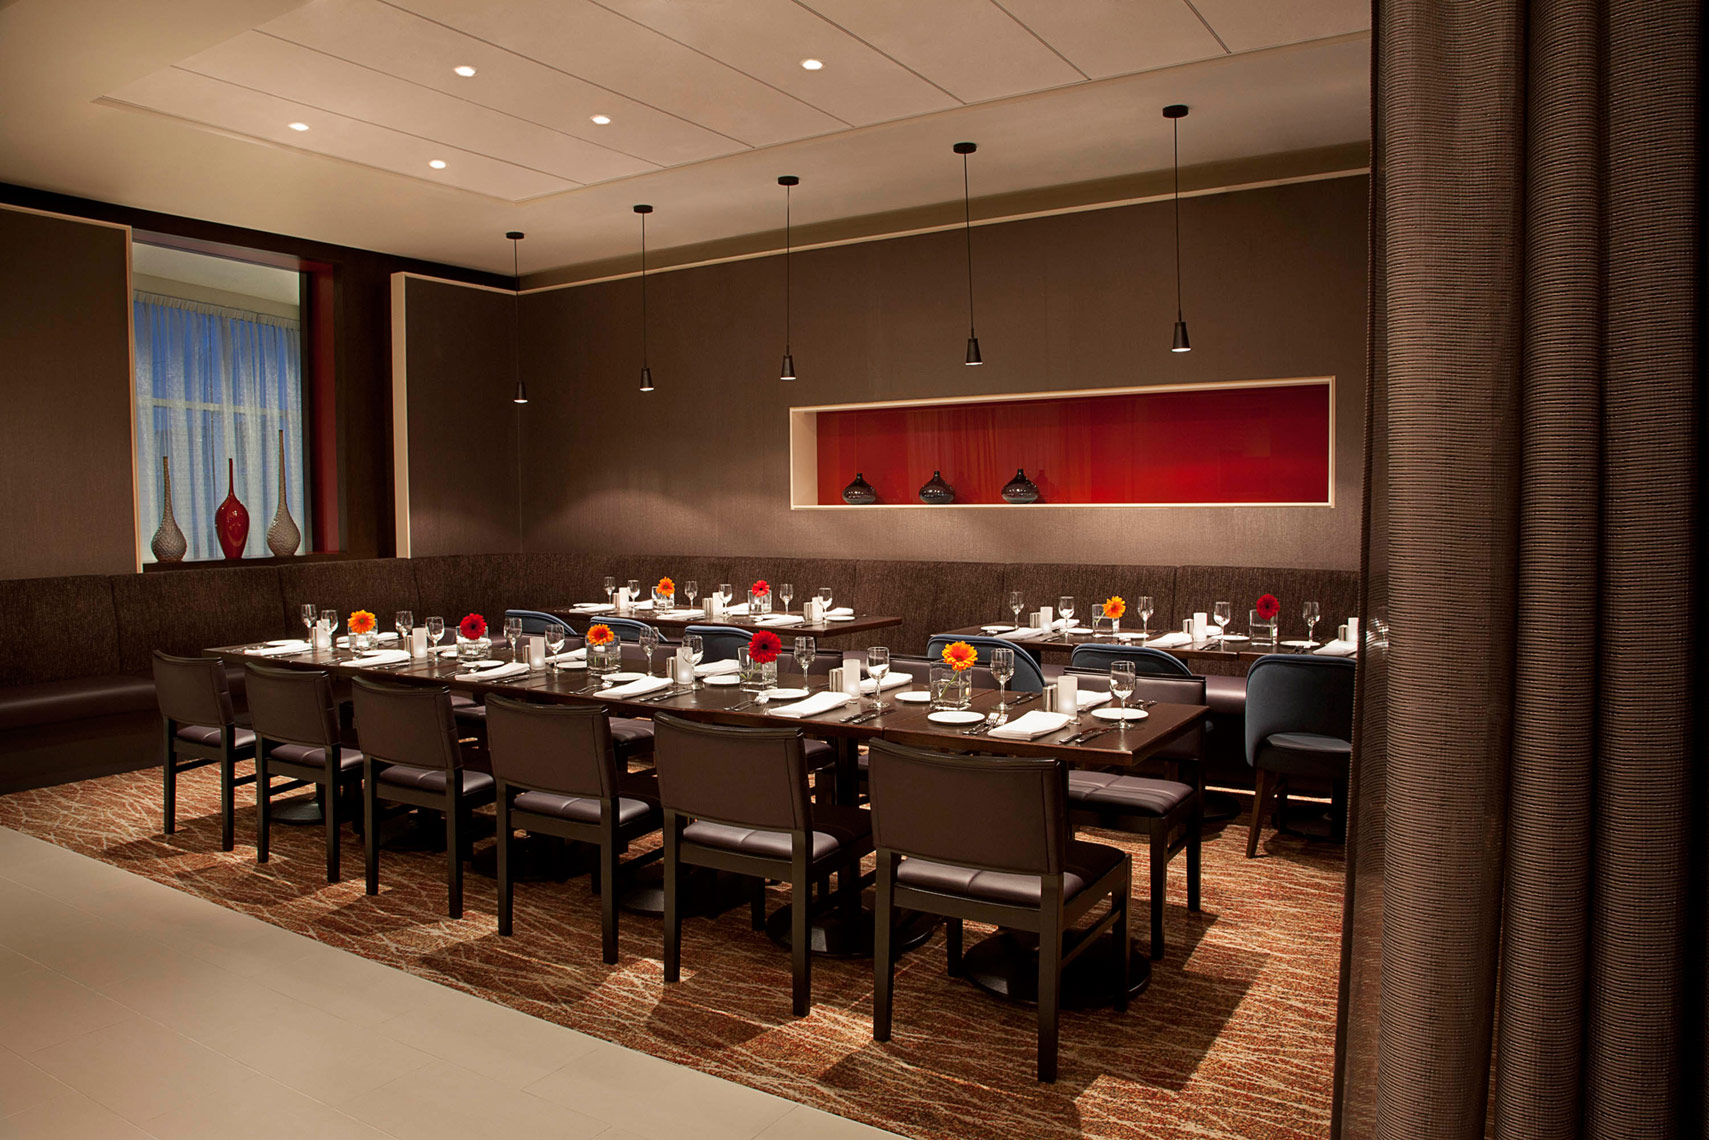 Hospitality-Hotel-Marriott-Courtyard-Private-Dining